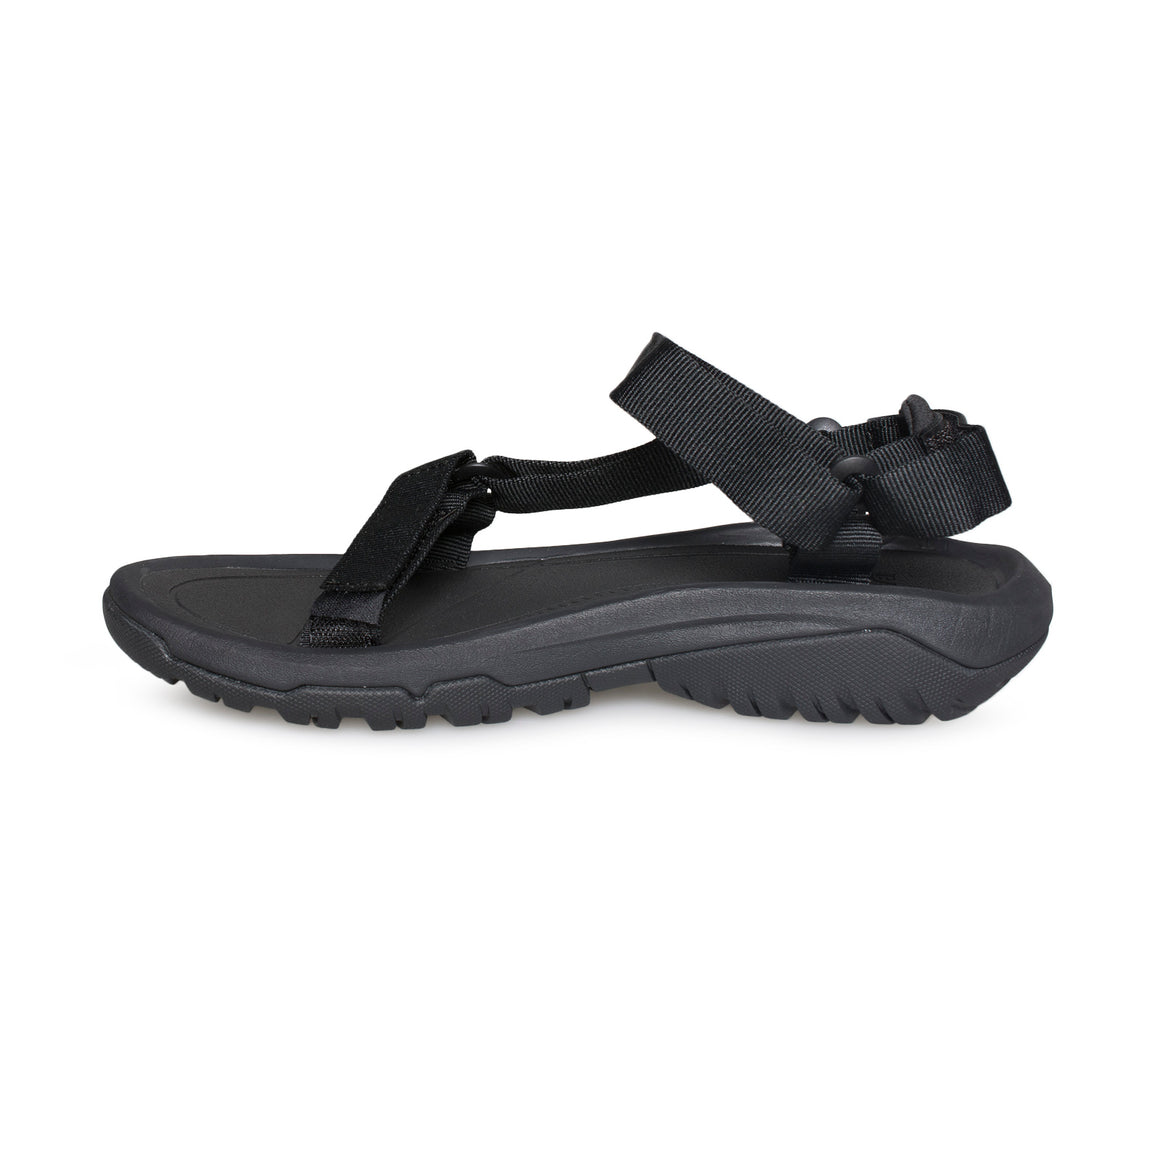 TEVA Hurricane XLT 2 Black Sandals - Women's